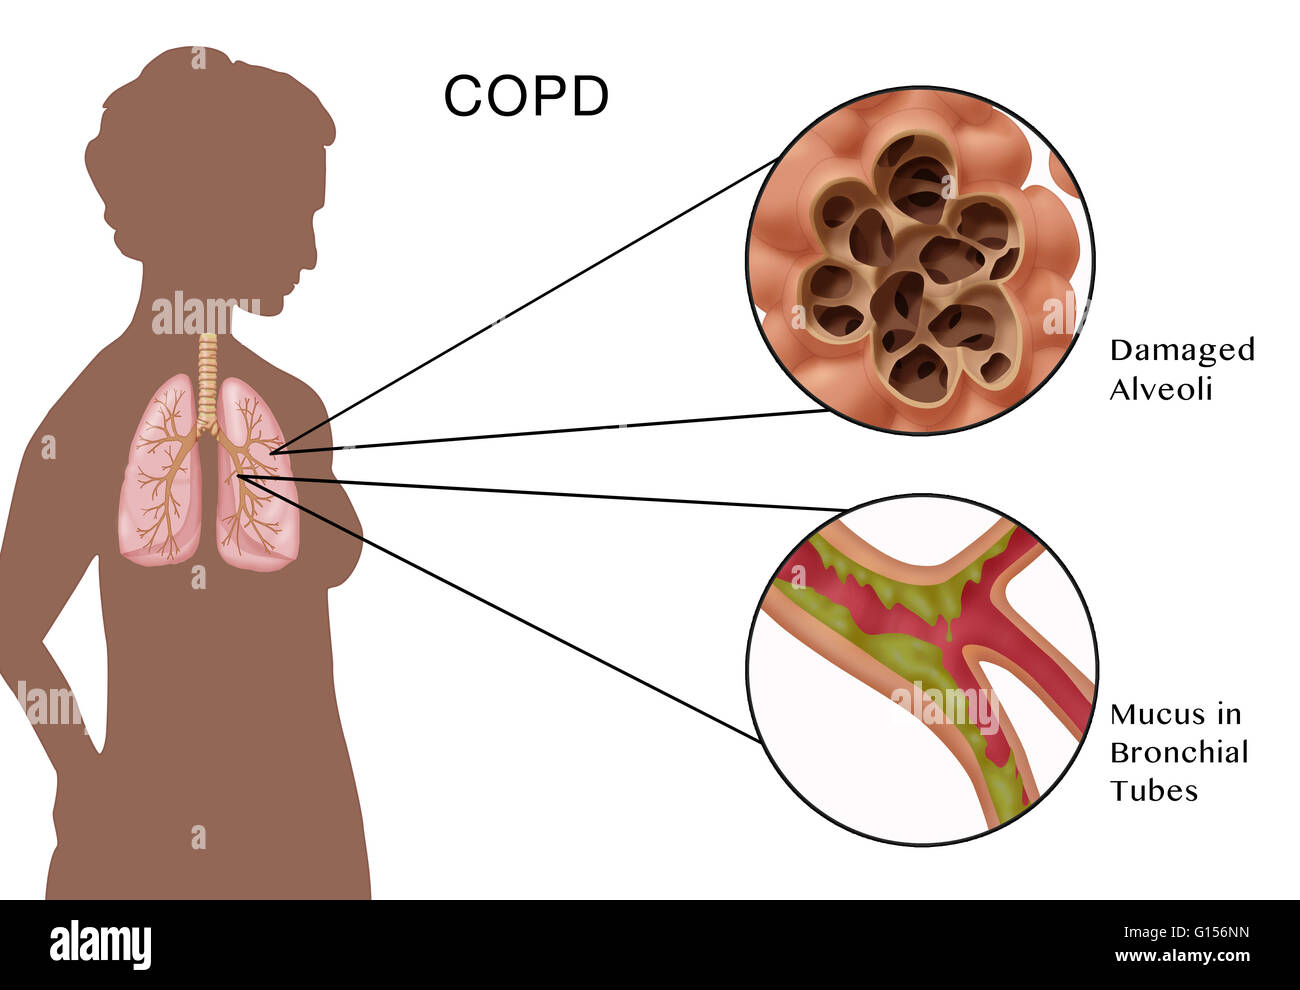 Illustration Of Chronic Obstructive Pulmonary Disease. Fat Pad Signs Of Stroke. Stroke Syndromes Signs Of Stroke. Mood Signs. 4chan Signs. Muster Point Signs. Heatstroke Prevention Signs Of Stroke. Plywood Frame Signs. Pool Signs